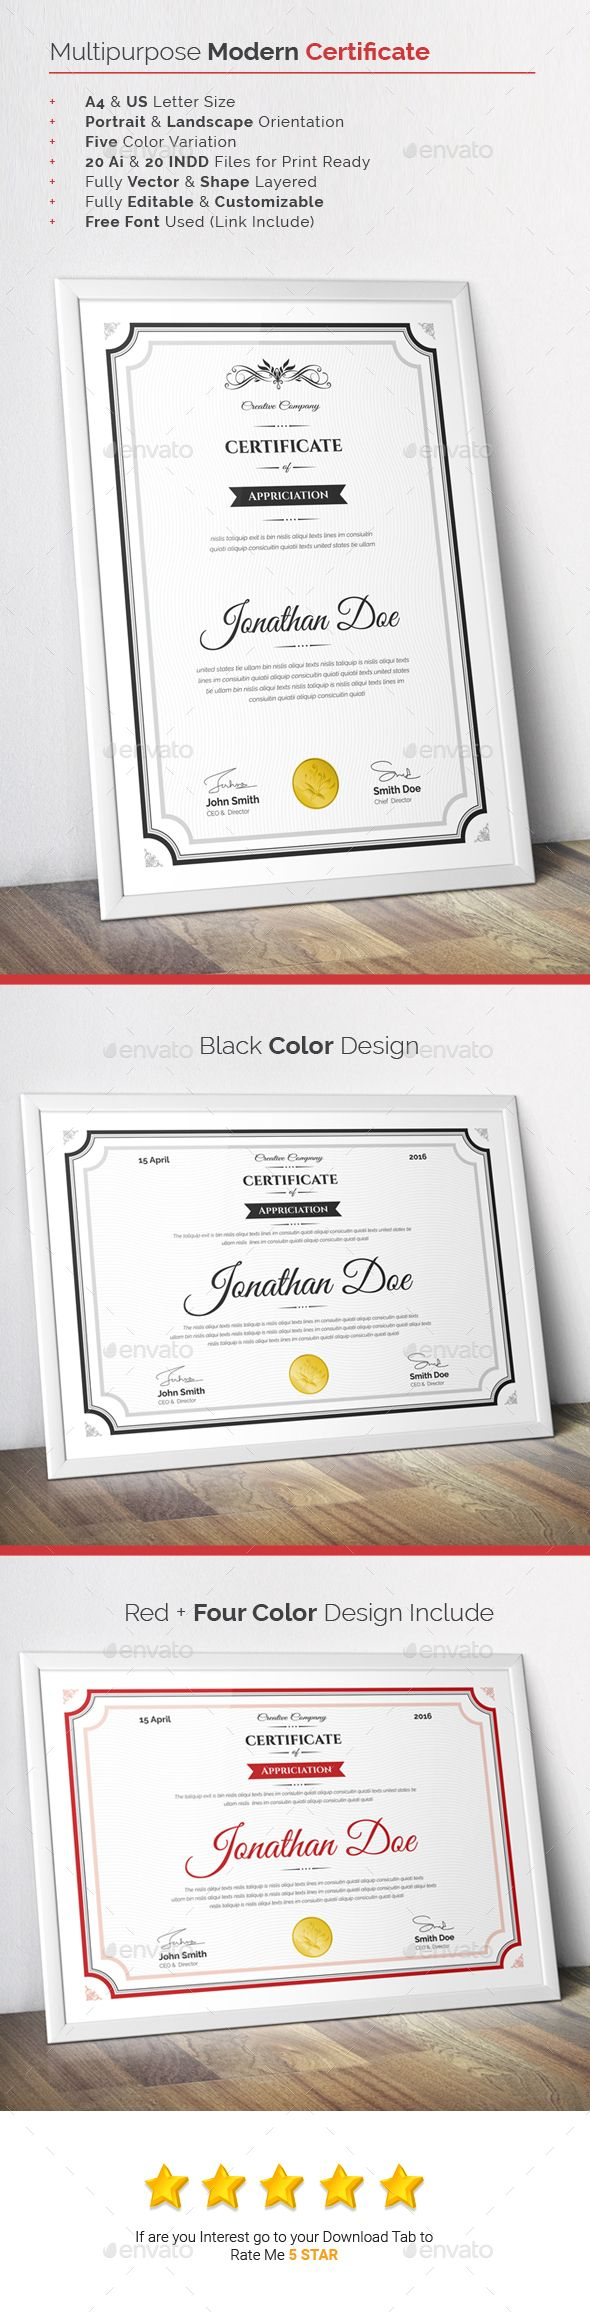 79 best certificate images on pinterest certificate templates multipurpose modern certificate template indd vector ai download here http xflitez Images